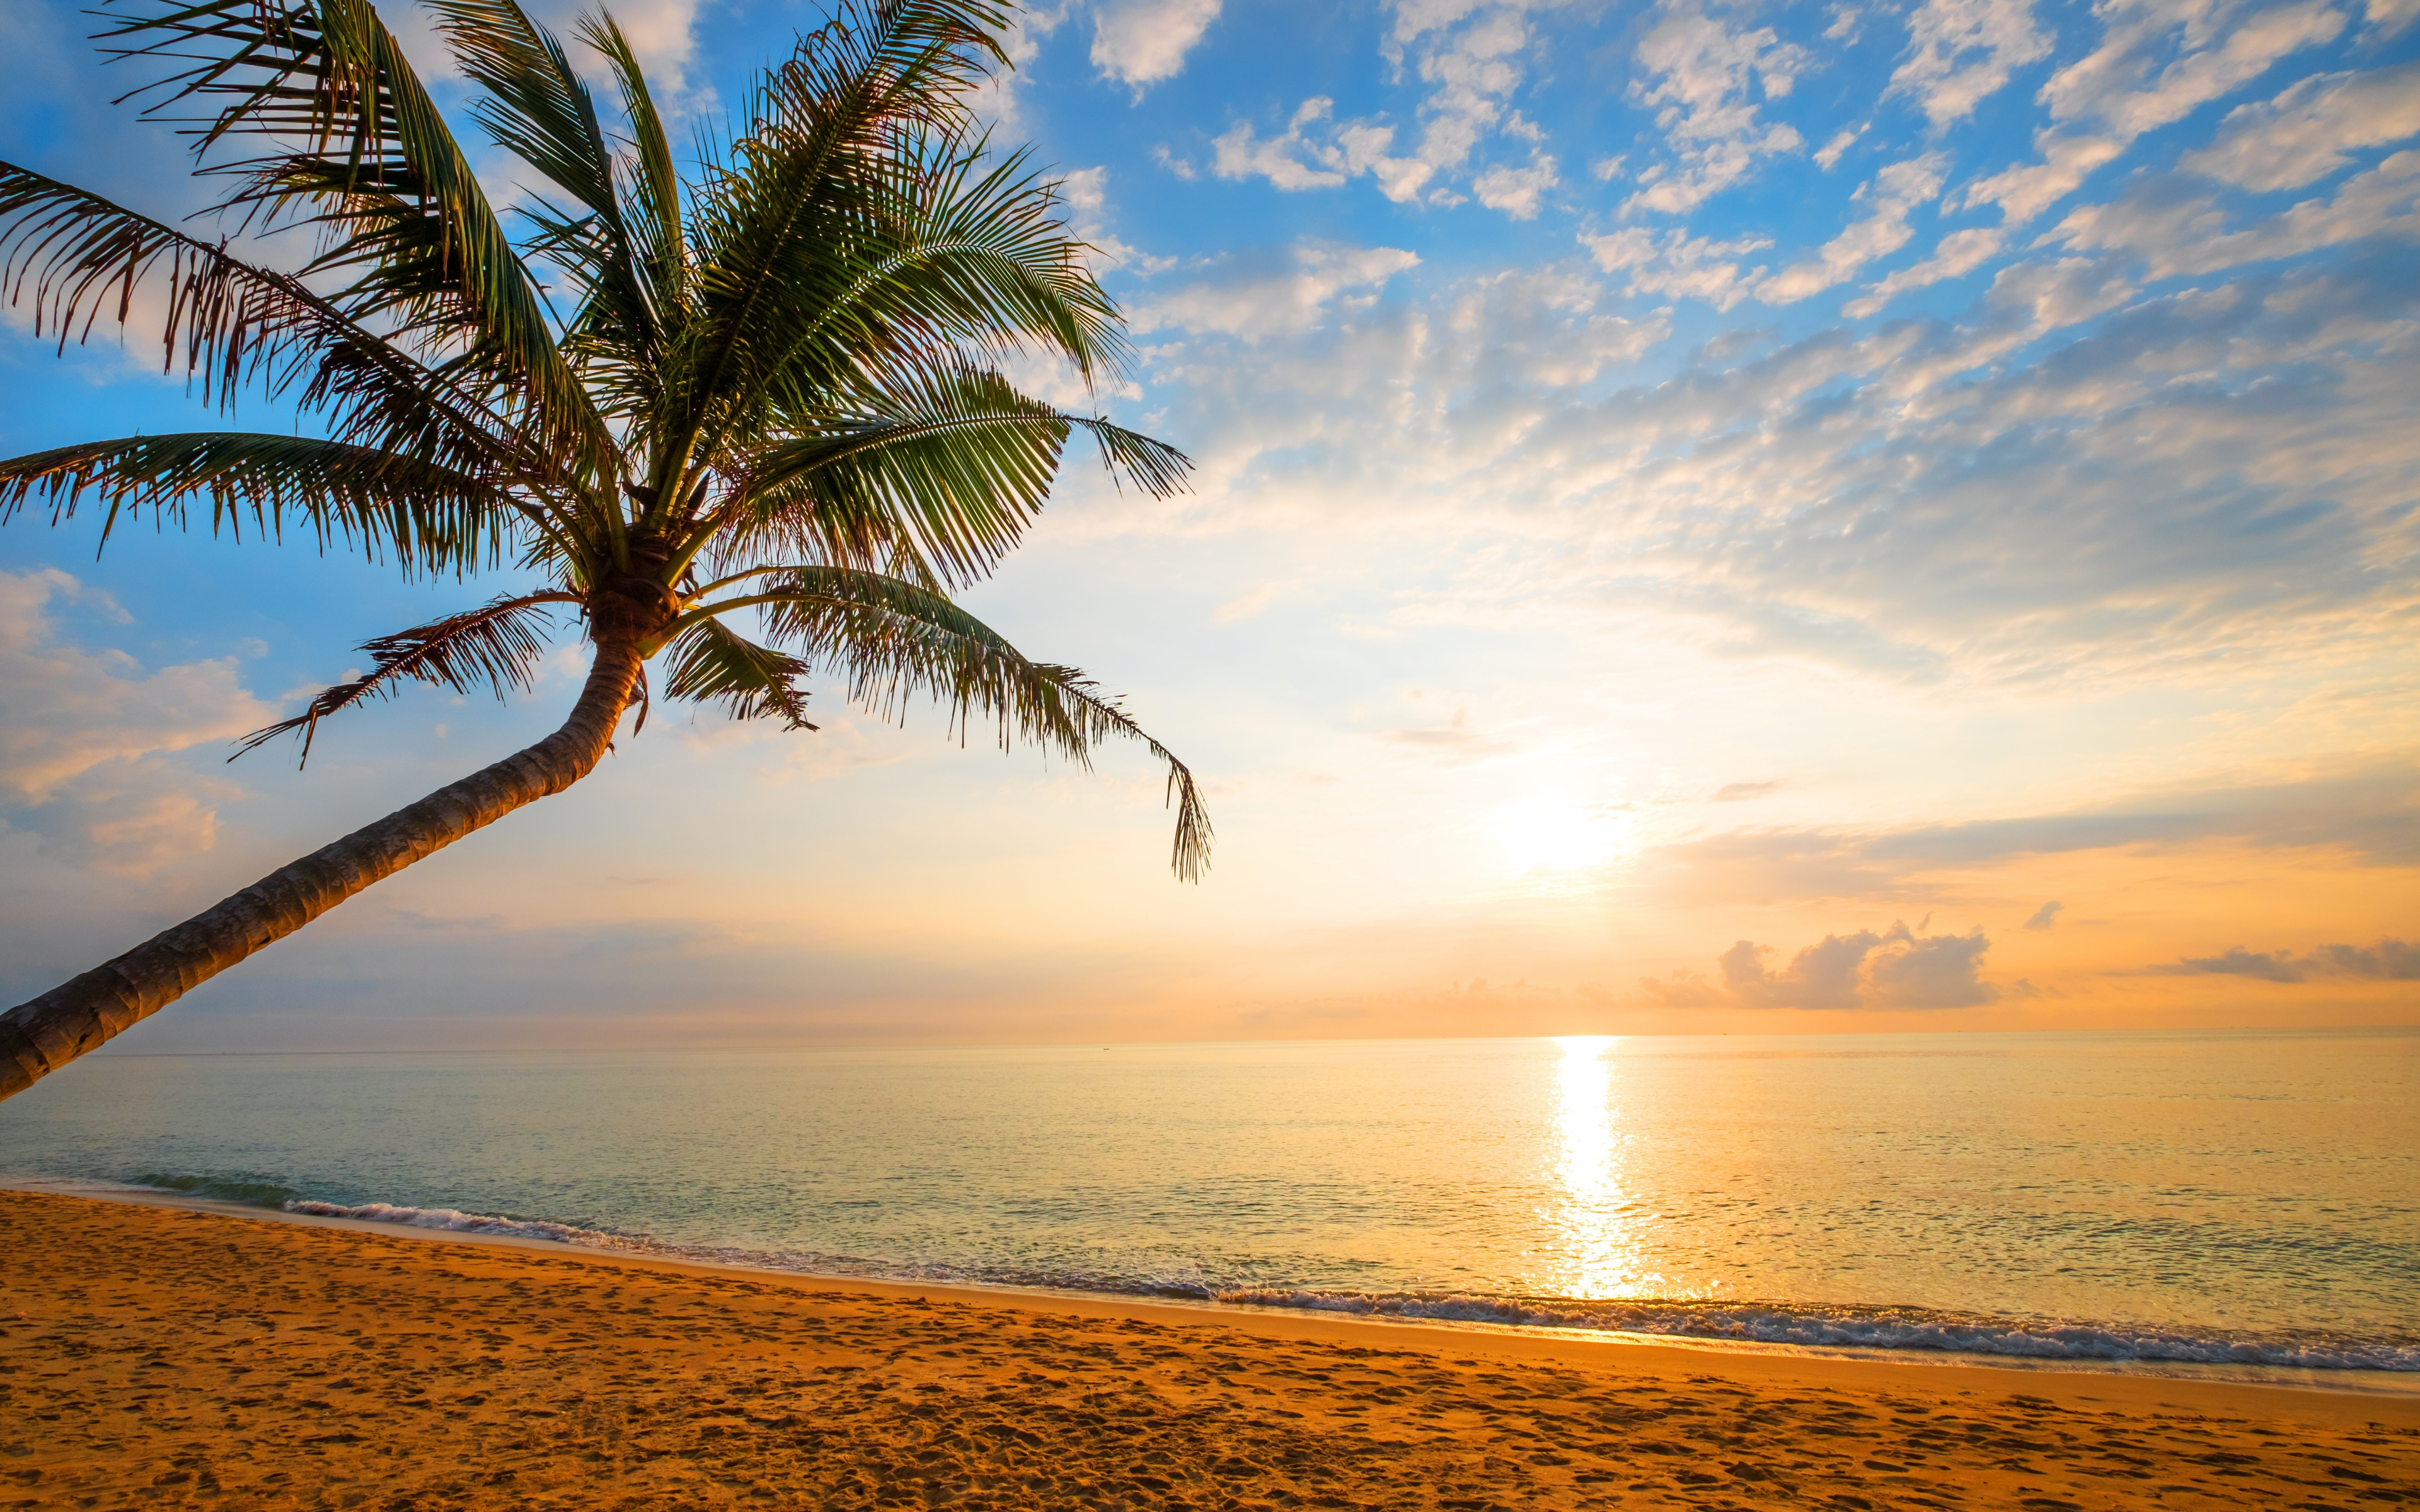 Download 3840x2400 Wallpaper Palm Tree Sand Beach Sunny Day